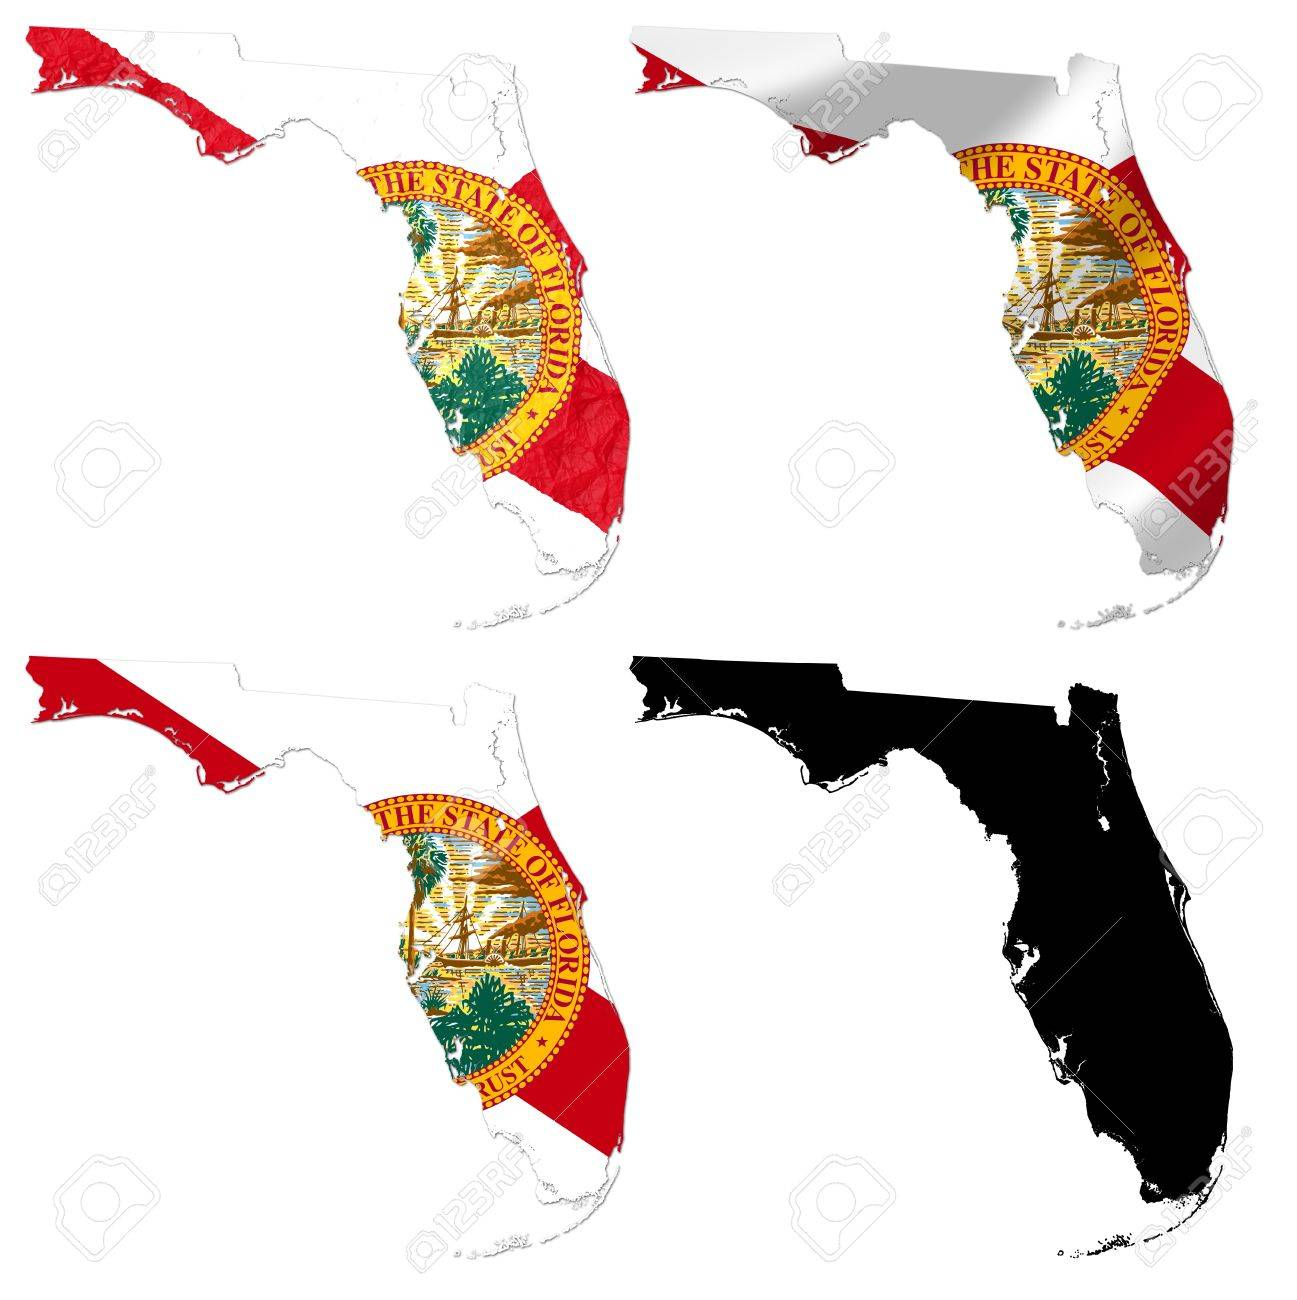 Us Map Photo Collage.Us Florida State Flag Over Map Collage Stock Photo Picture And